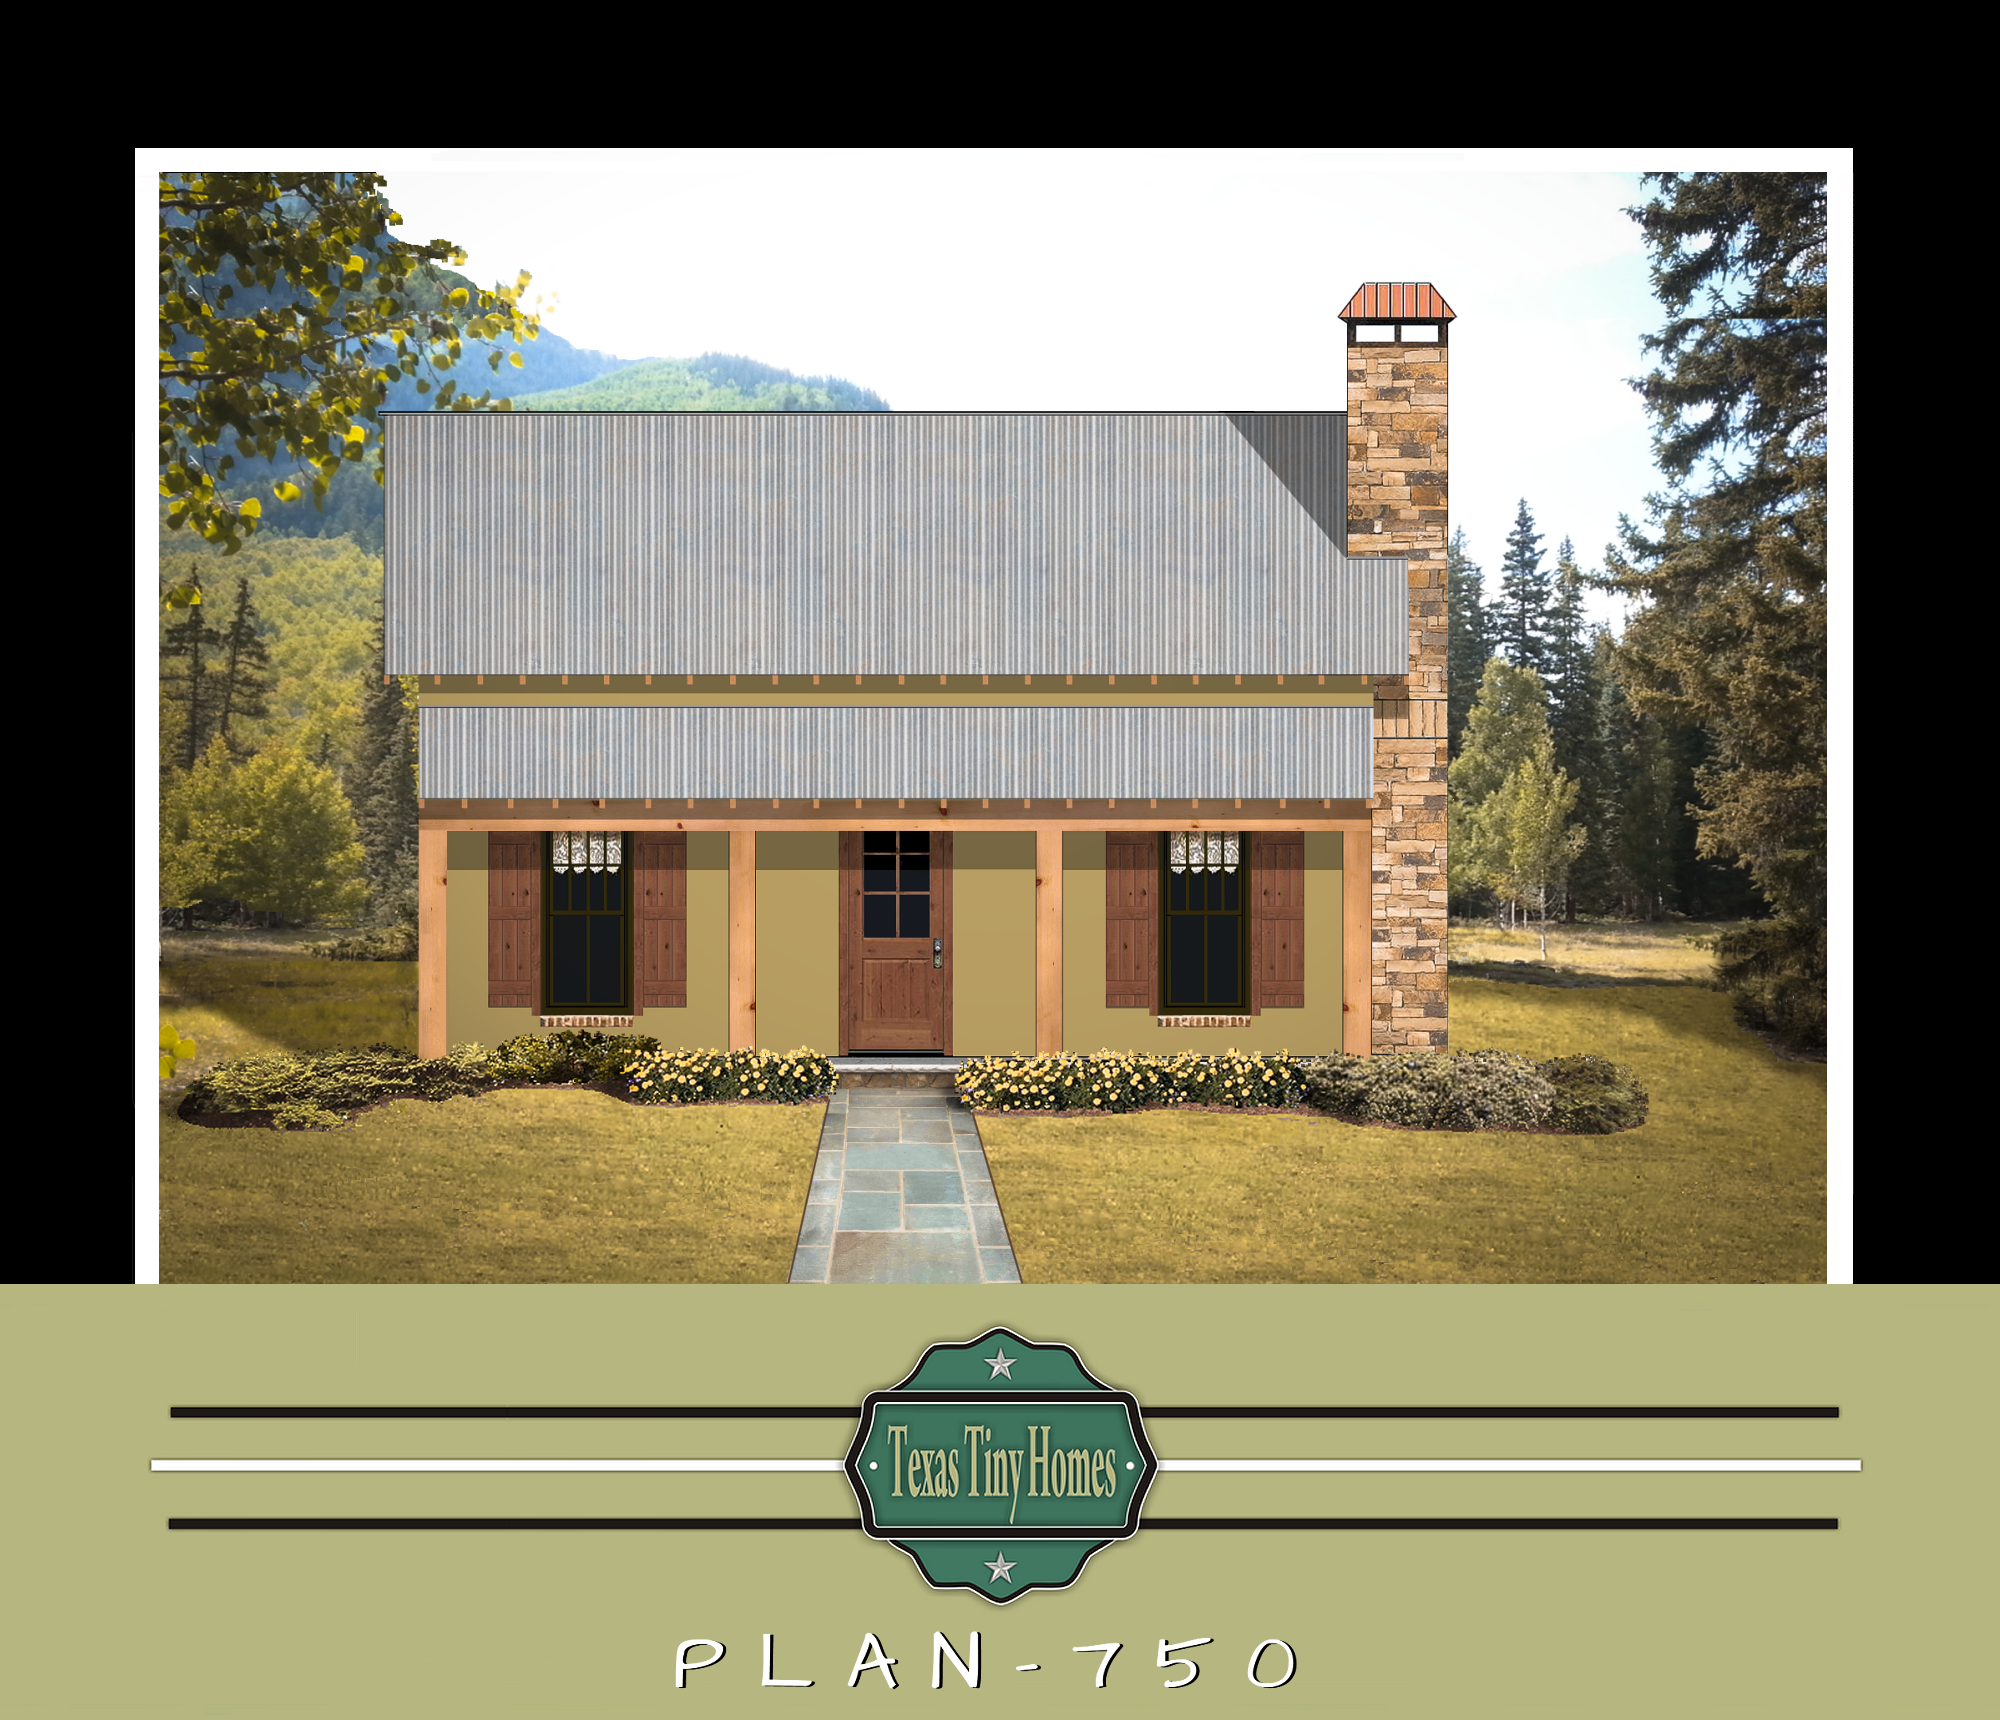 Texas tiny homes plan 750 for Houses for sale with floor plans